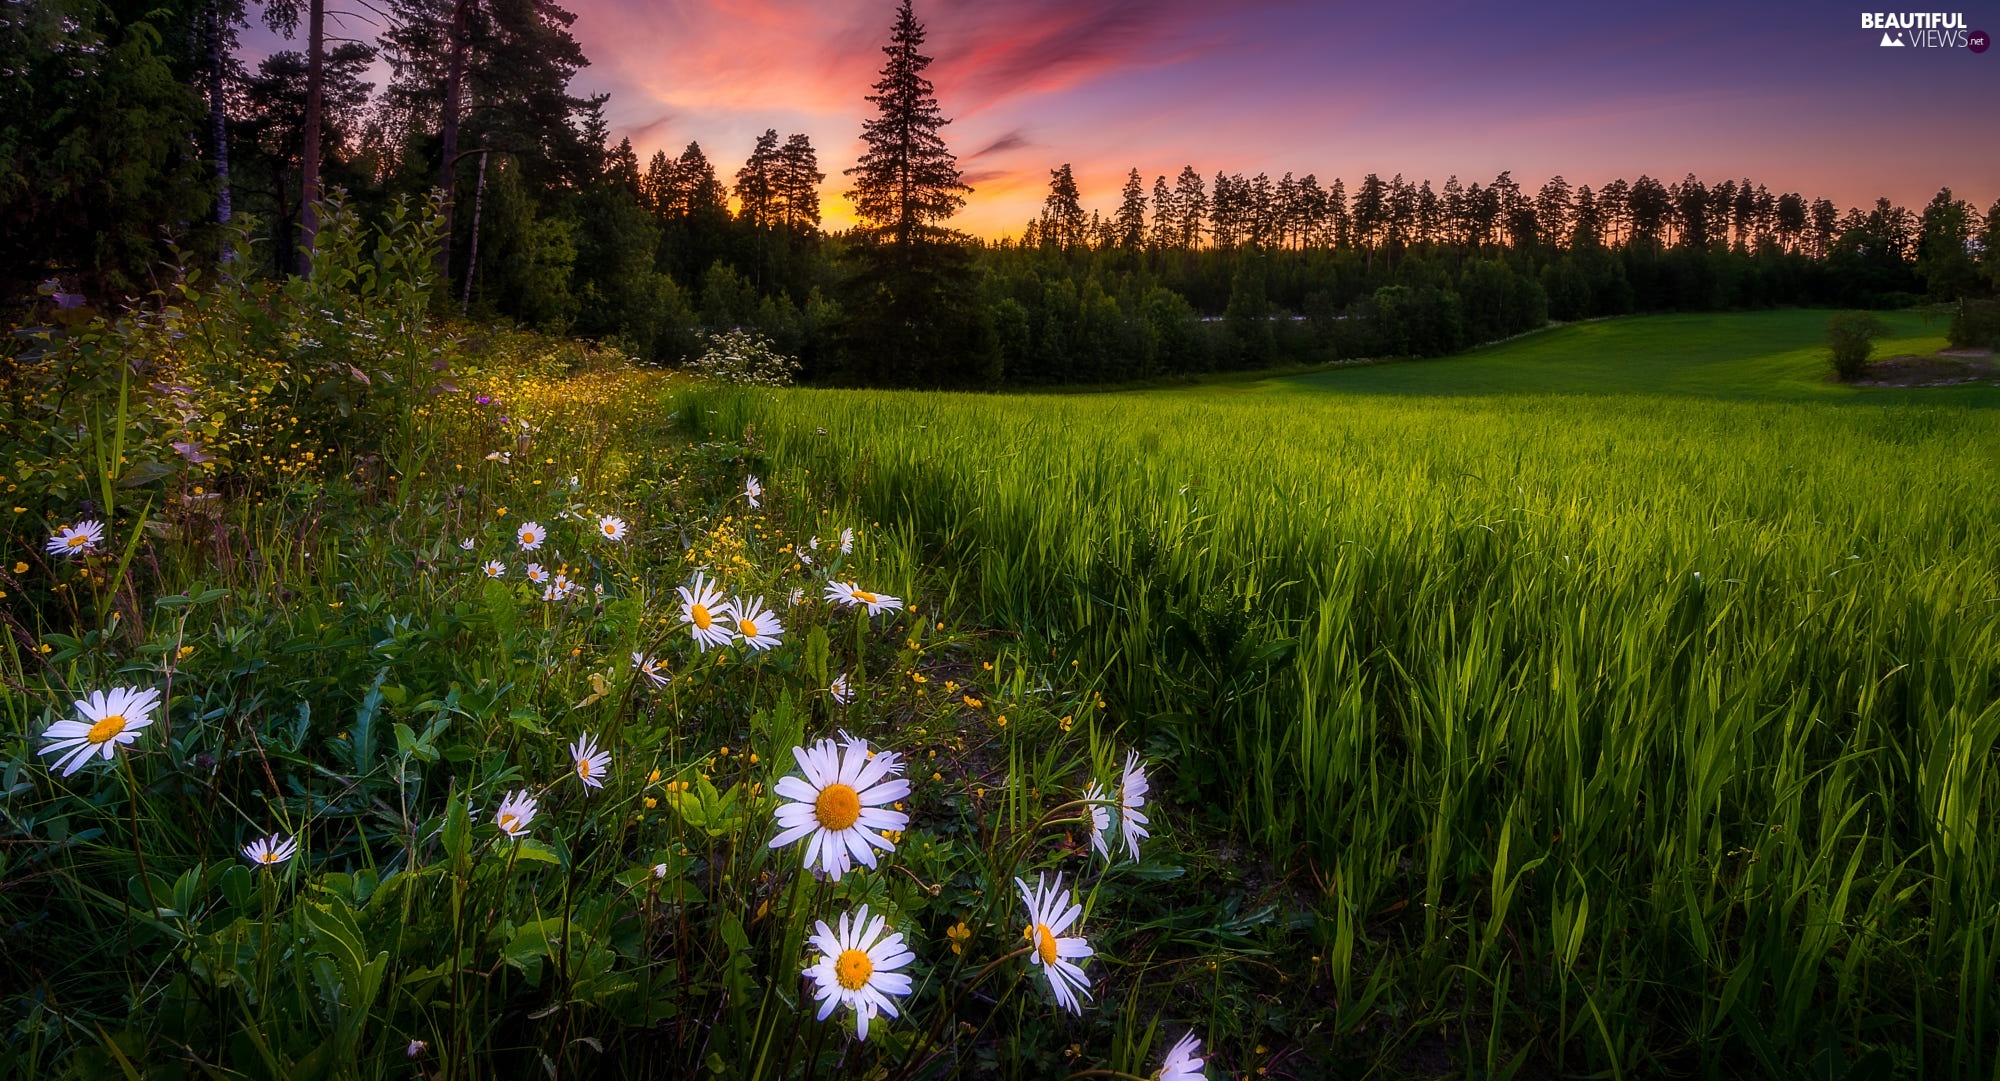 daisy, Flowers, Meadow, trees, grass, viewes